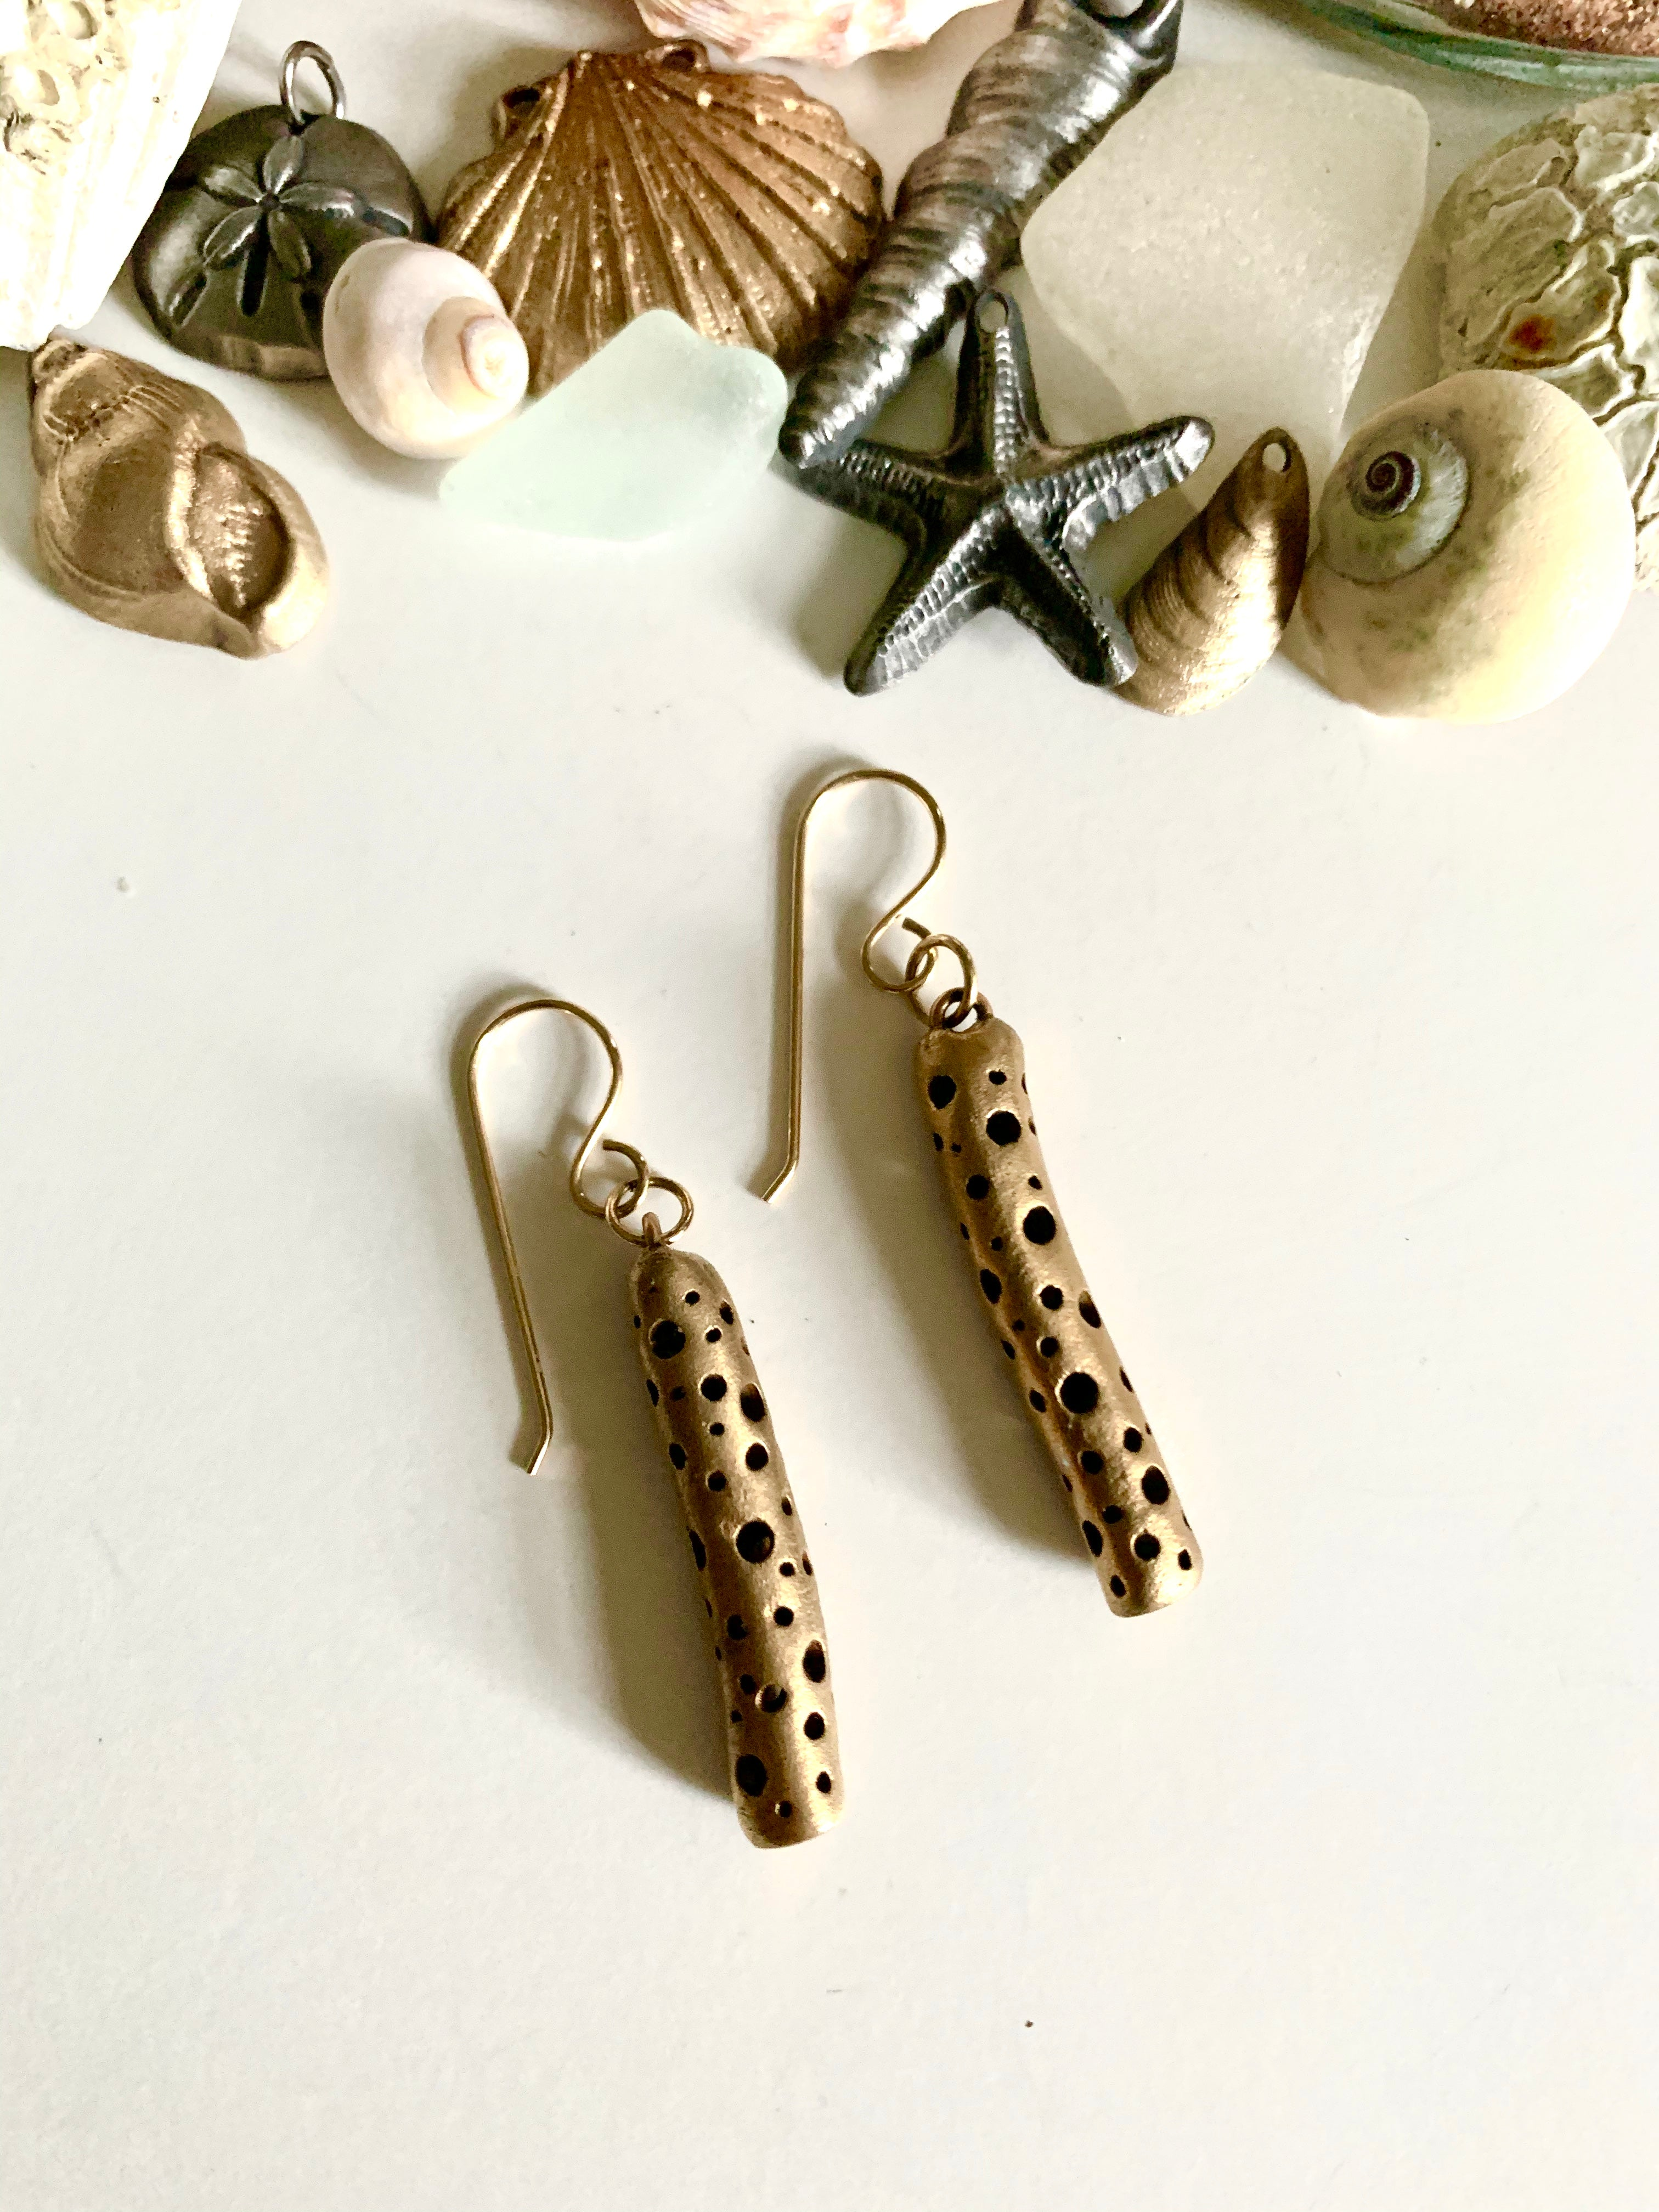 Bronze hand made everyday earrings with seashells